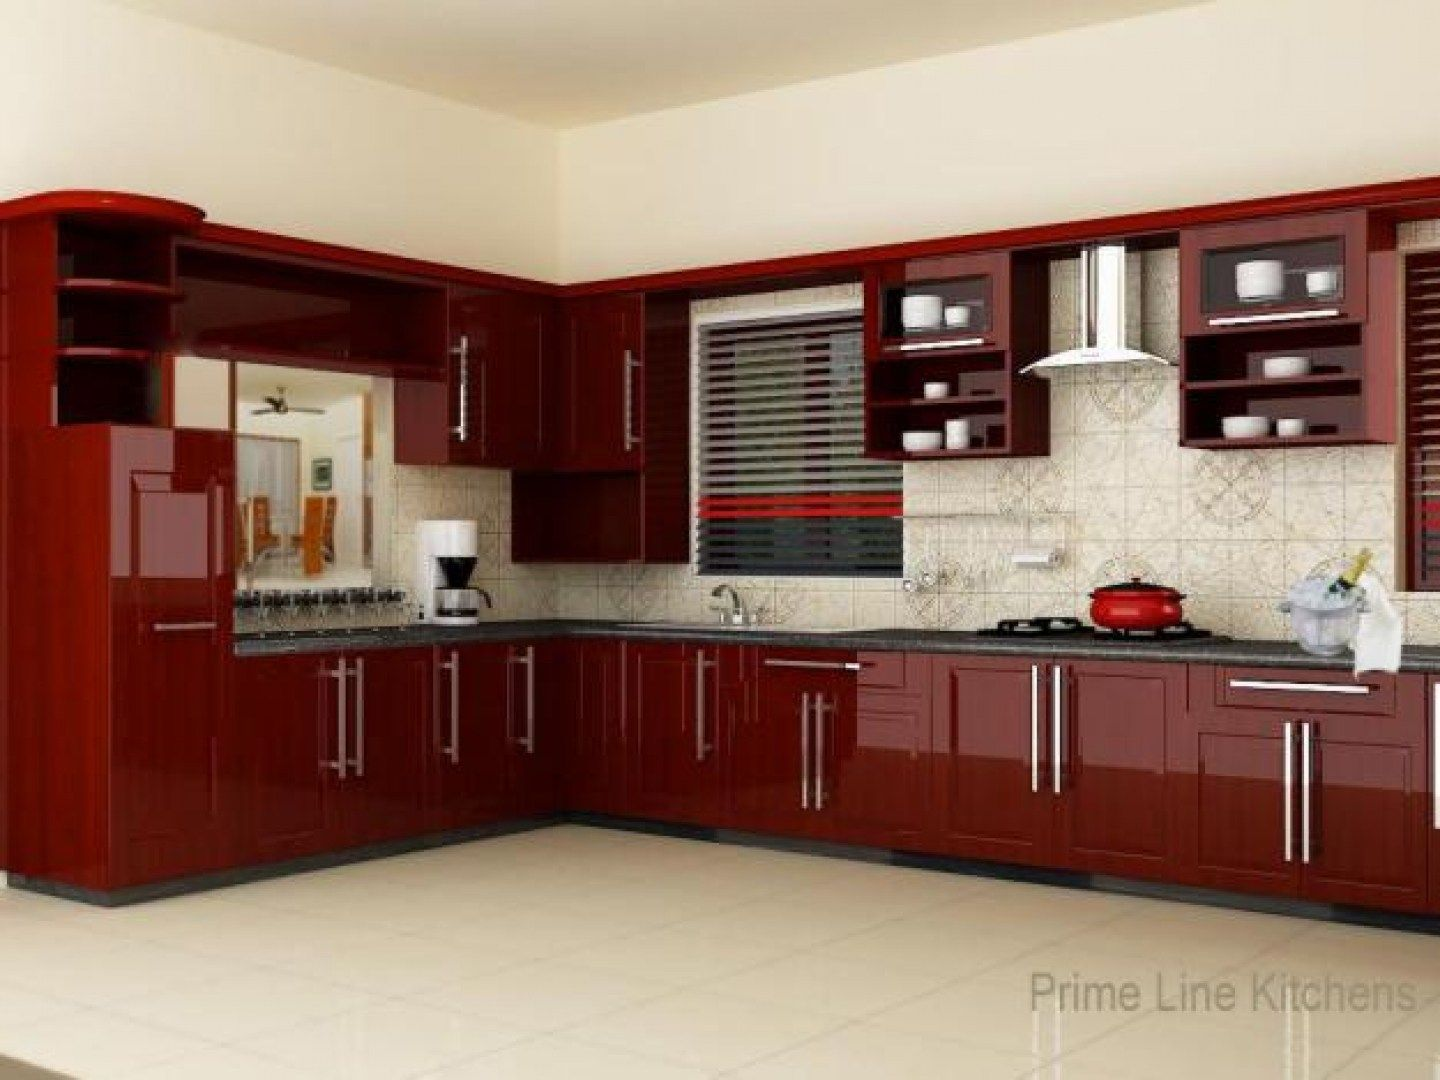 Kitchen design ideas kitchen woodwork designs hyderabad for 5 x 20 kitchen ideas